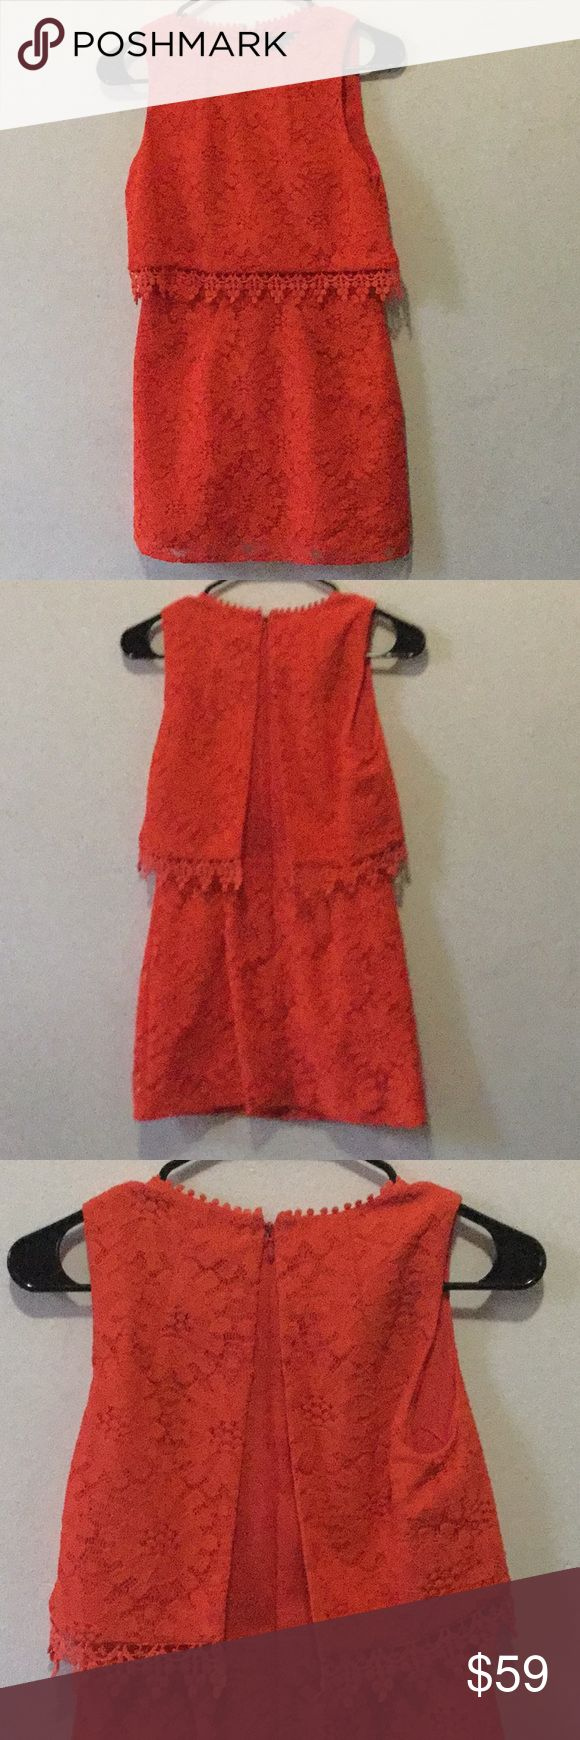 Topshop petite orange dress size 2 mini Almost new orange size 2 mini Topshop PETITE Dresses Mini